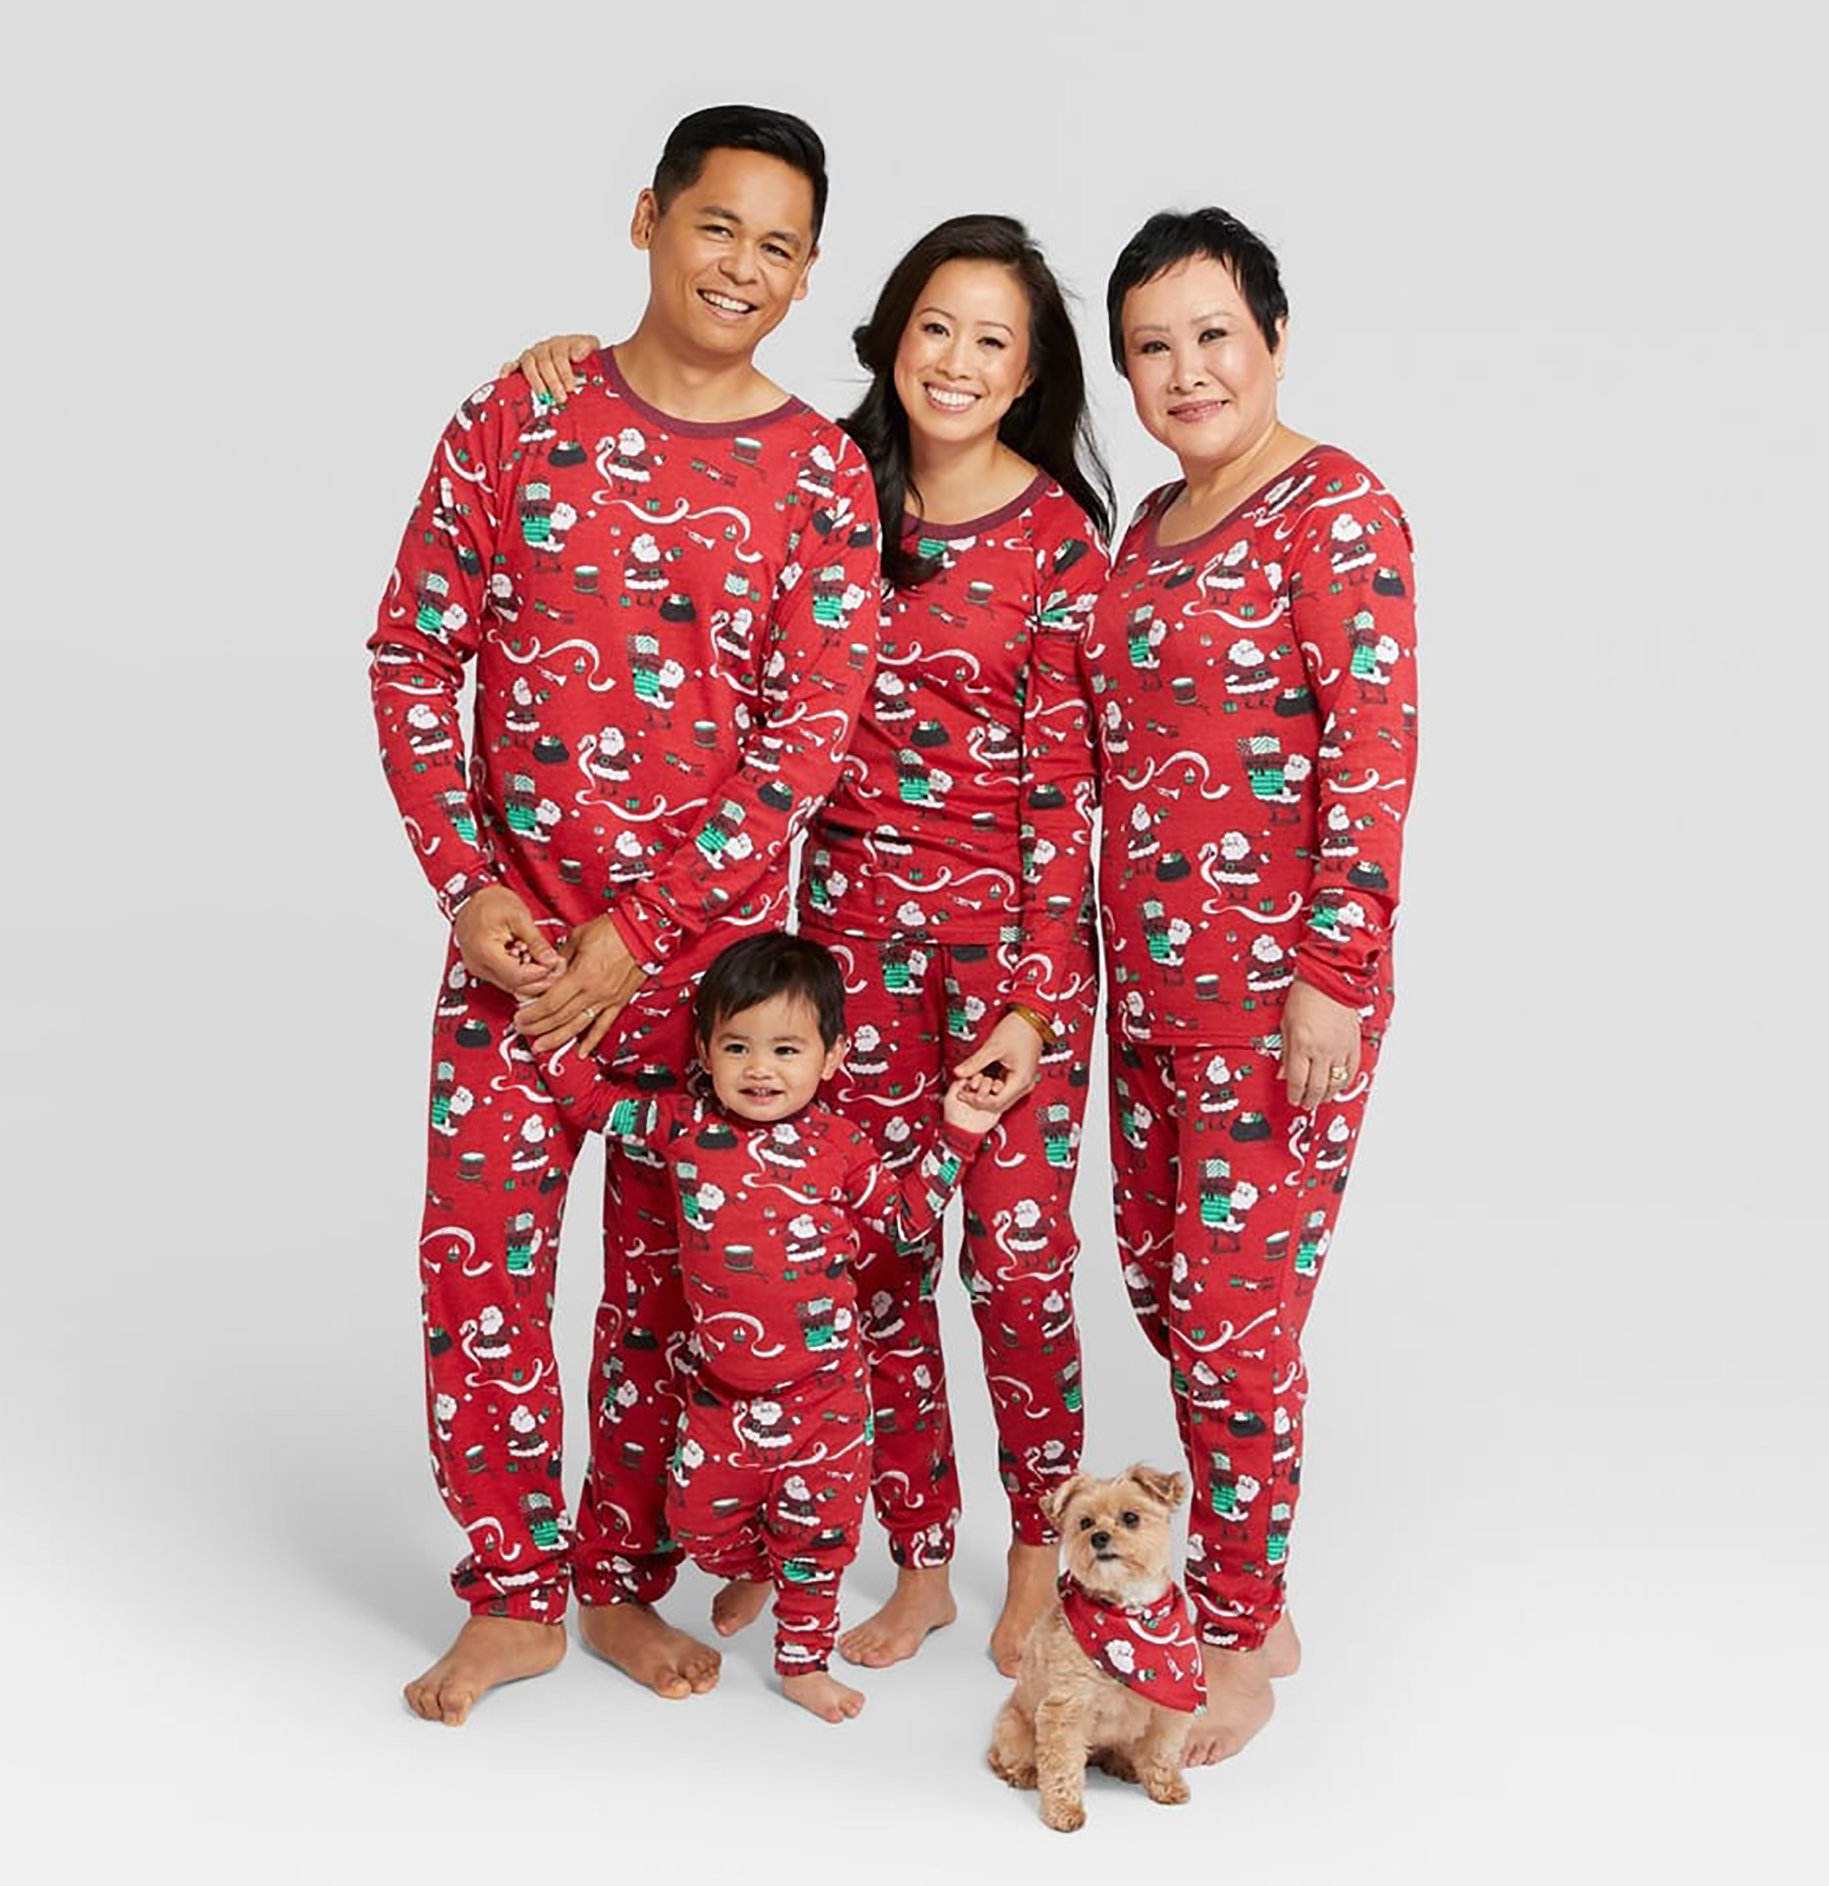 Best Matching Family Christmas Pajamas for 2018 Family